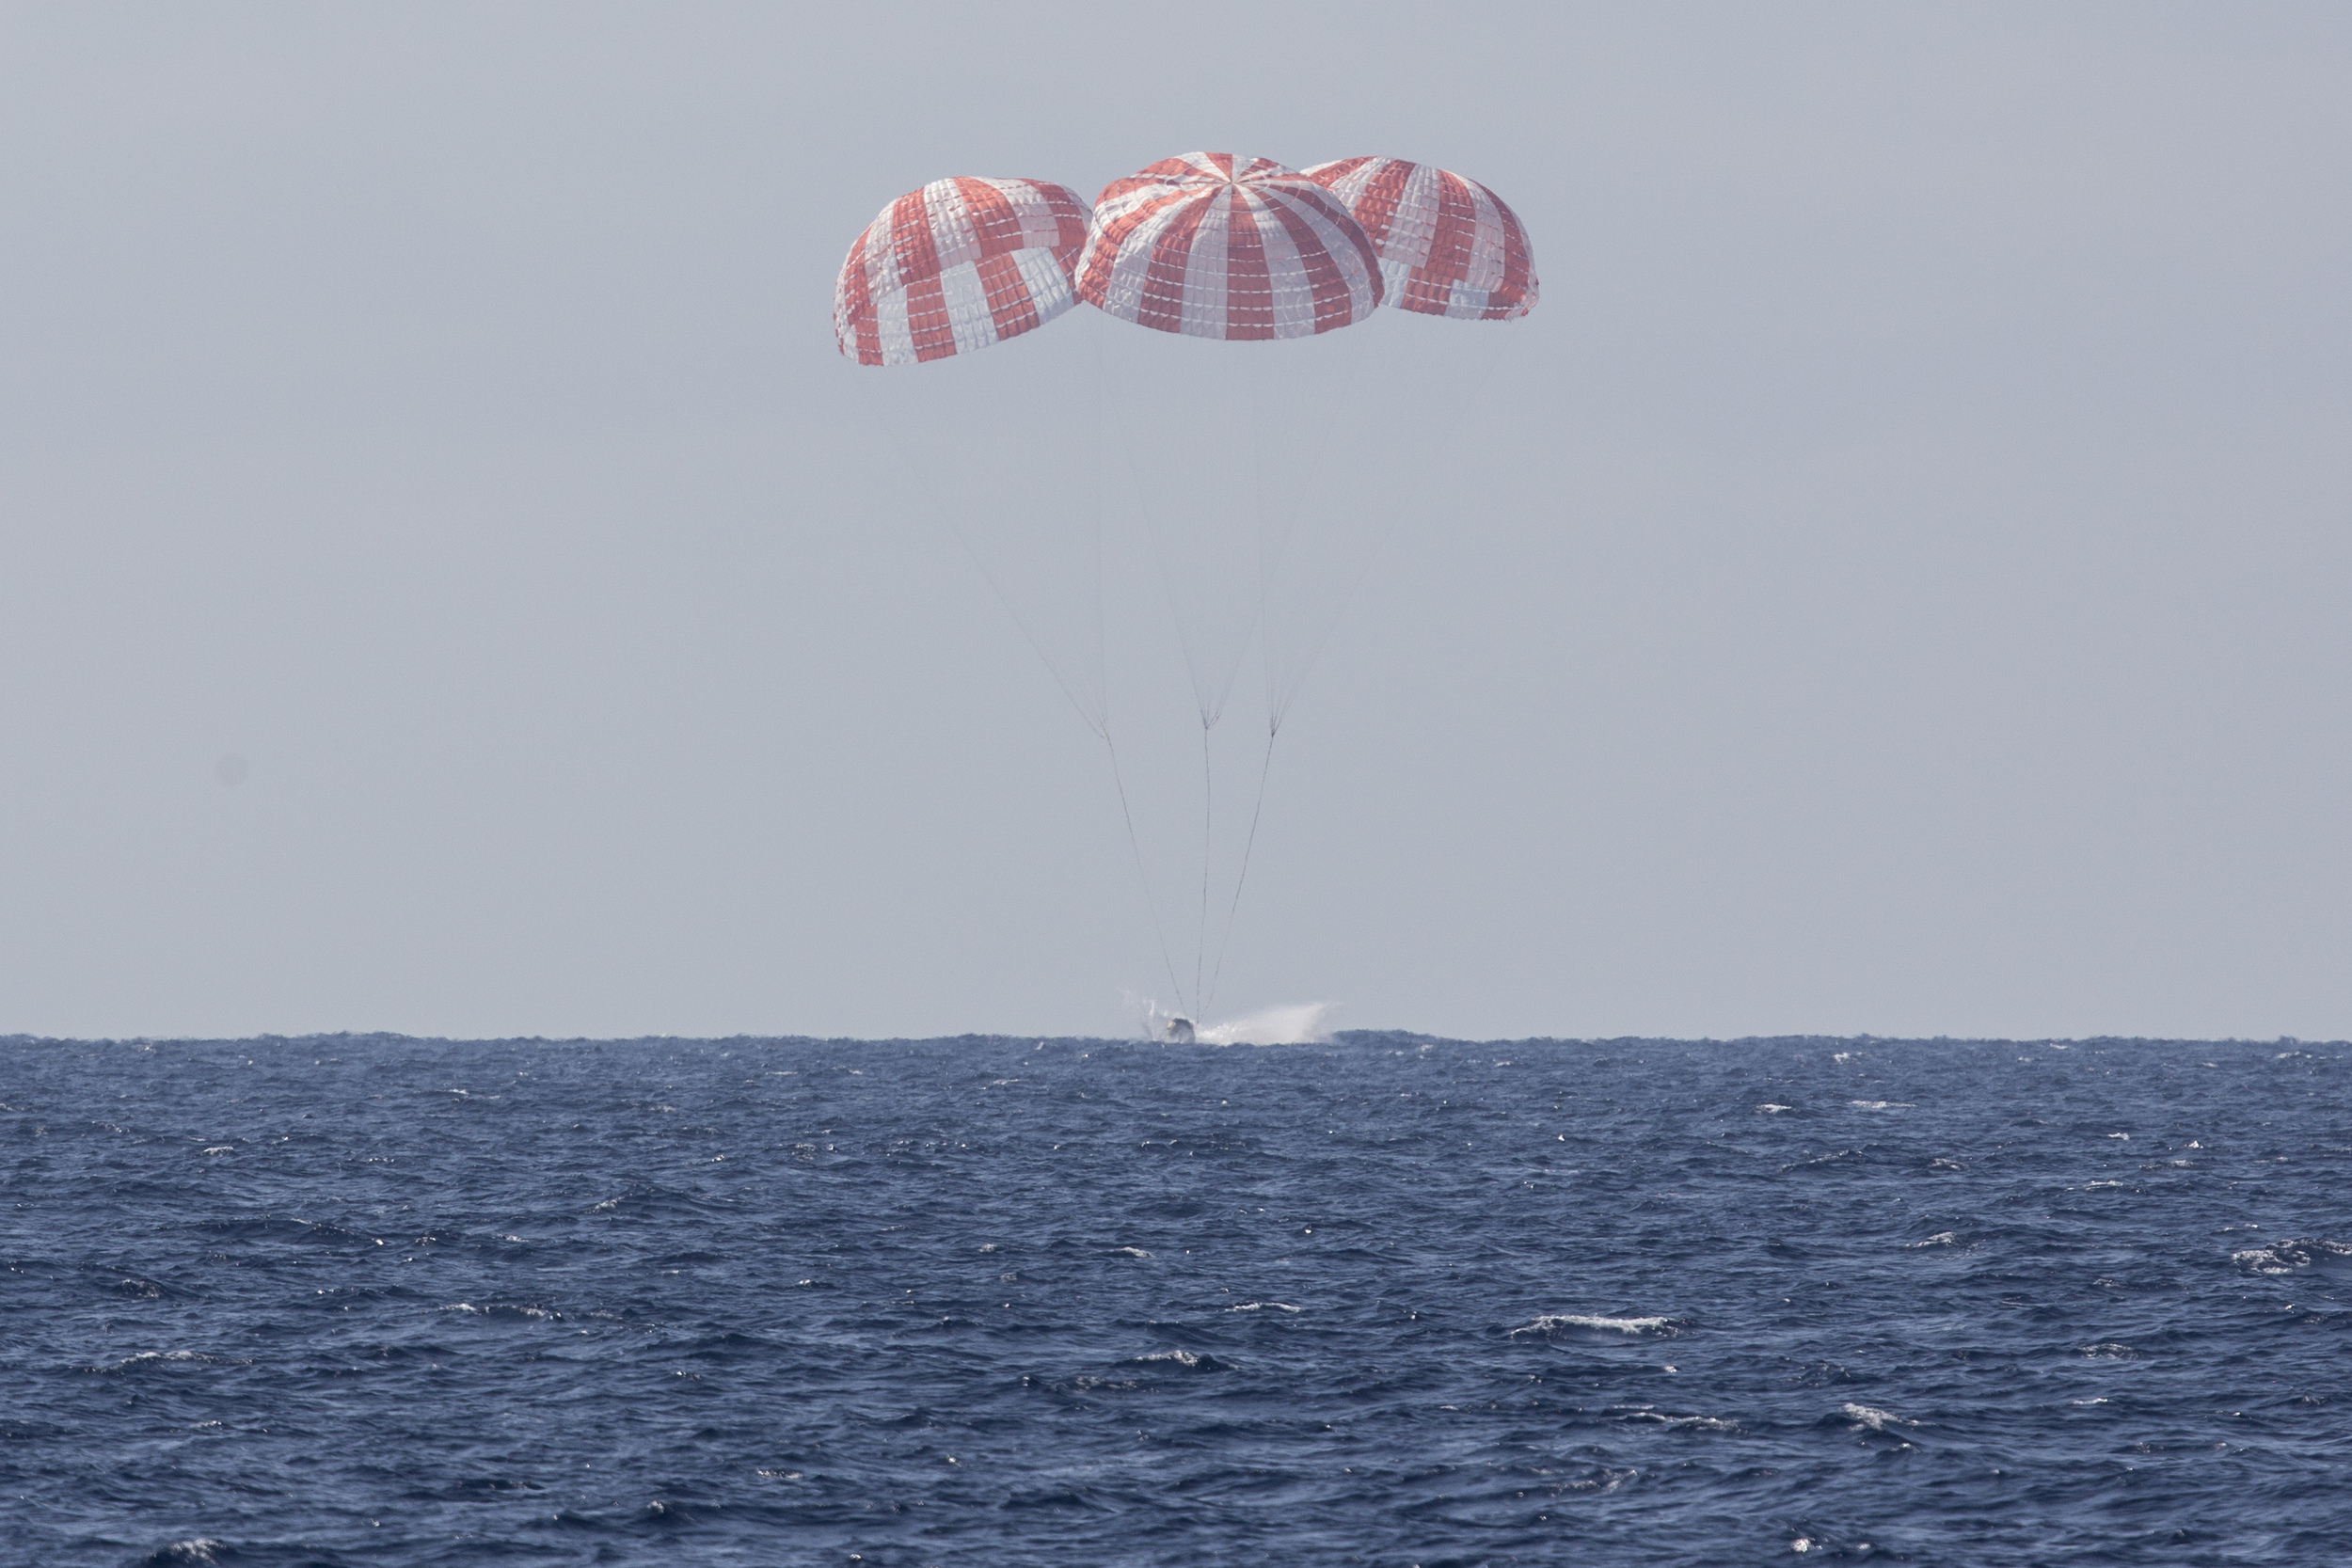 Dragon parachutes into the Pacific Ocean after leaving the ISS. Photo Credit: SpaceX